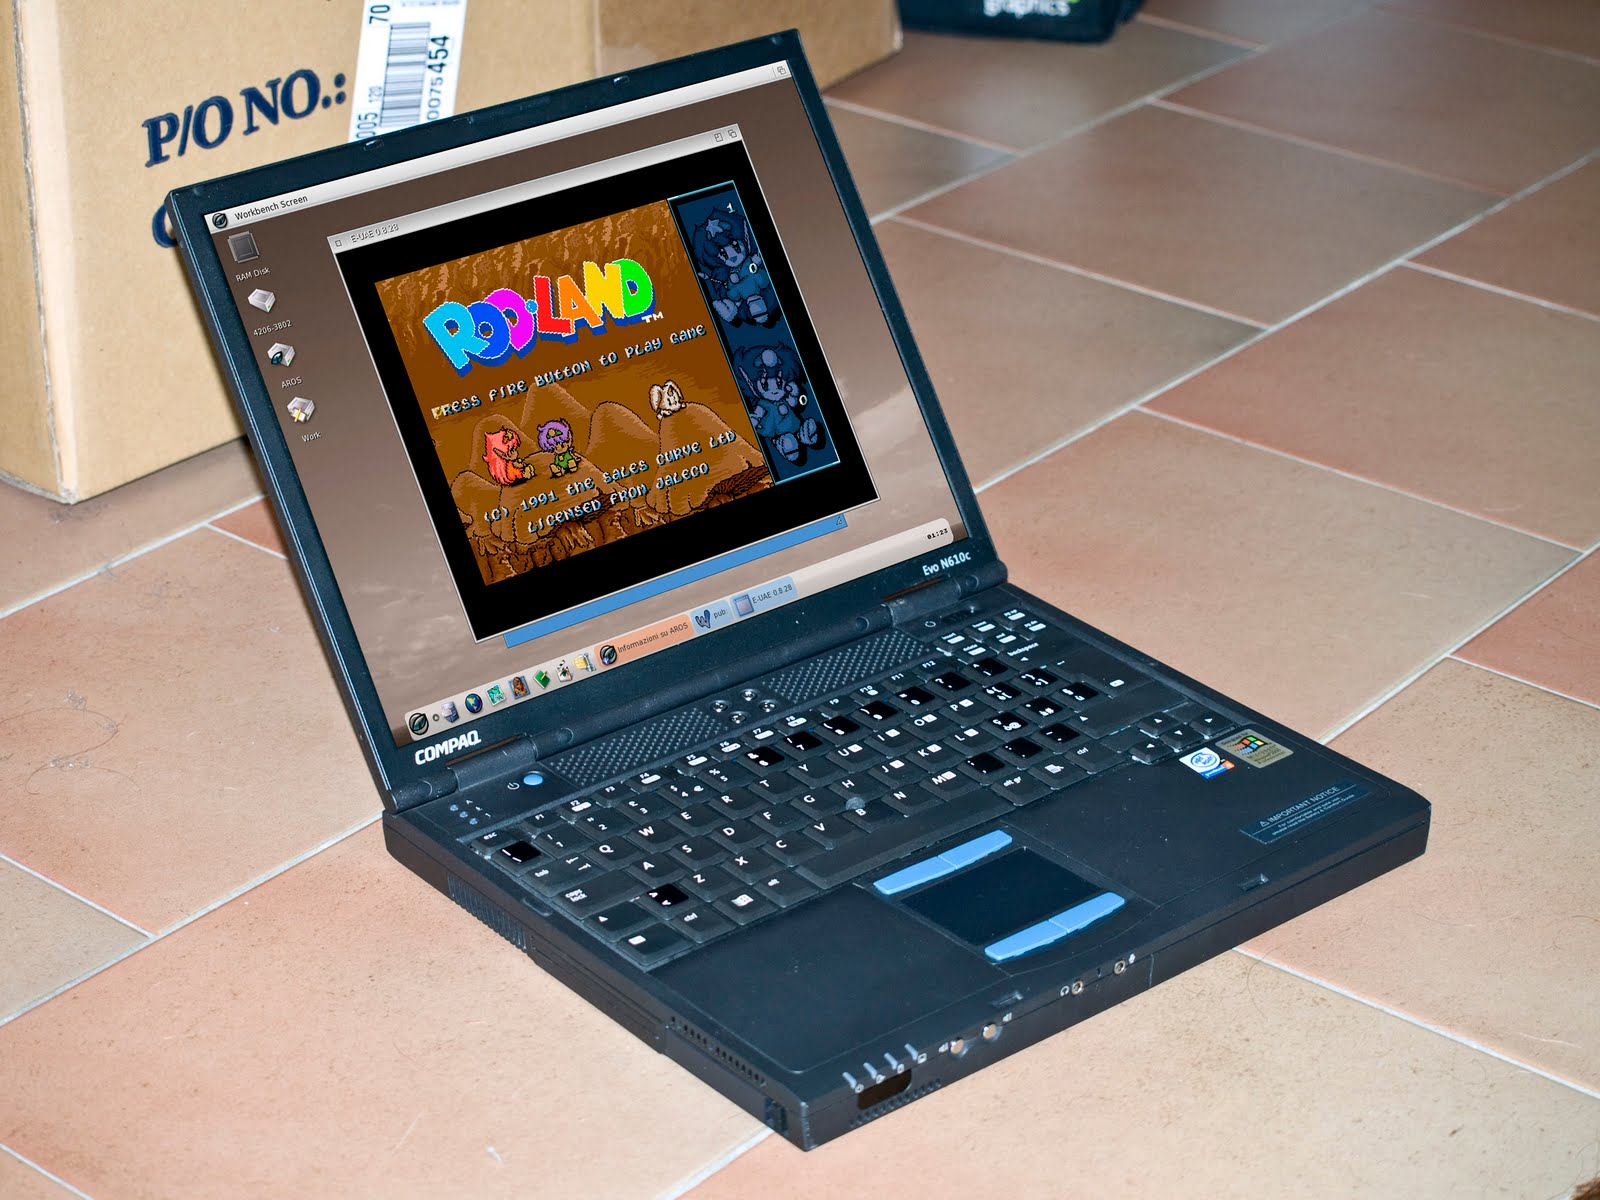 Mission Icaros Laptop: Accomplished! - Icaros Desktop